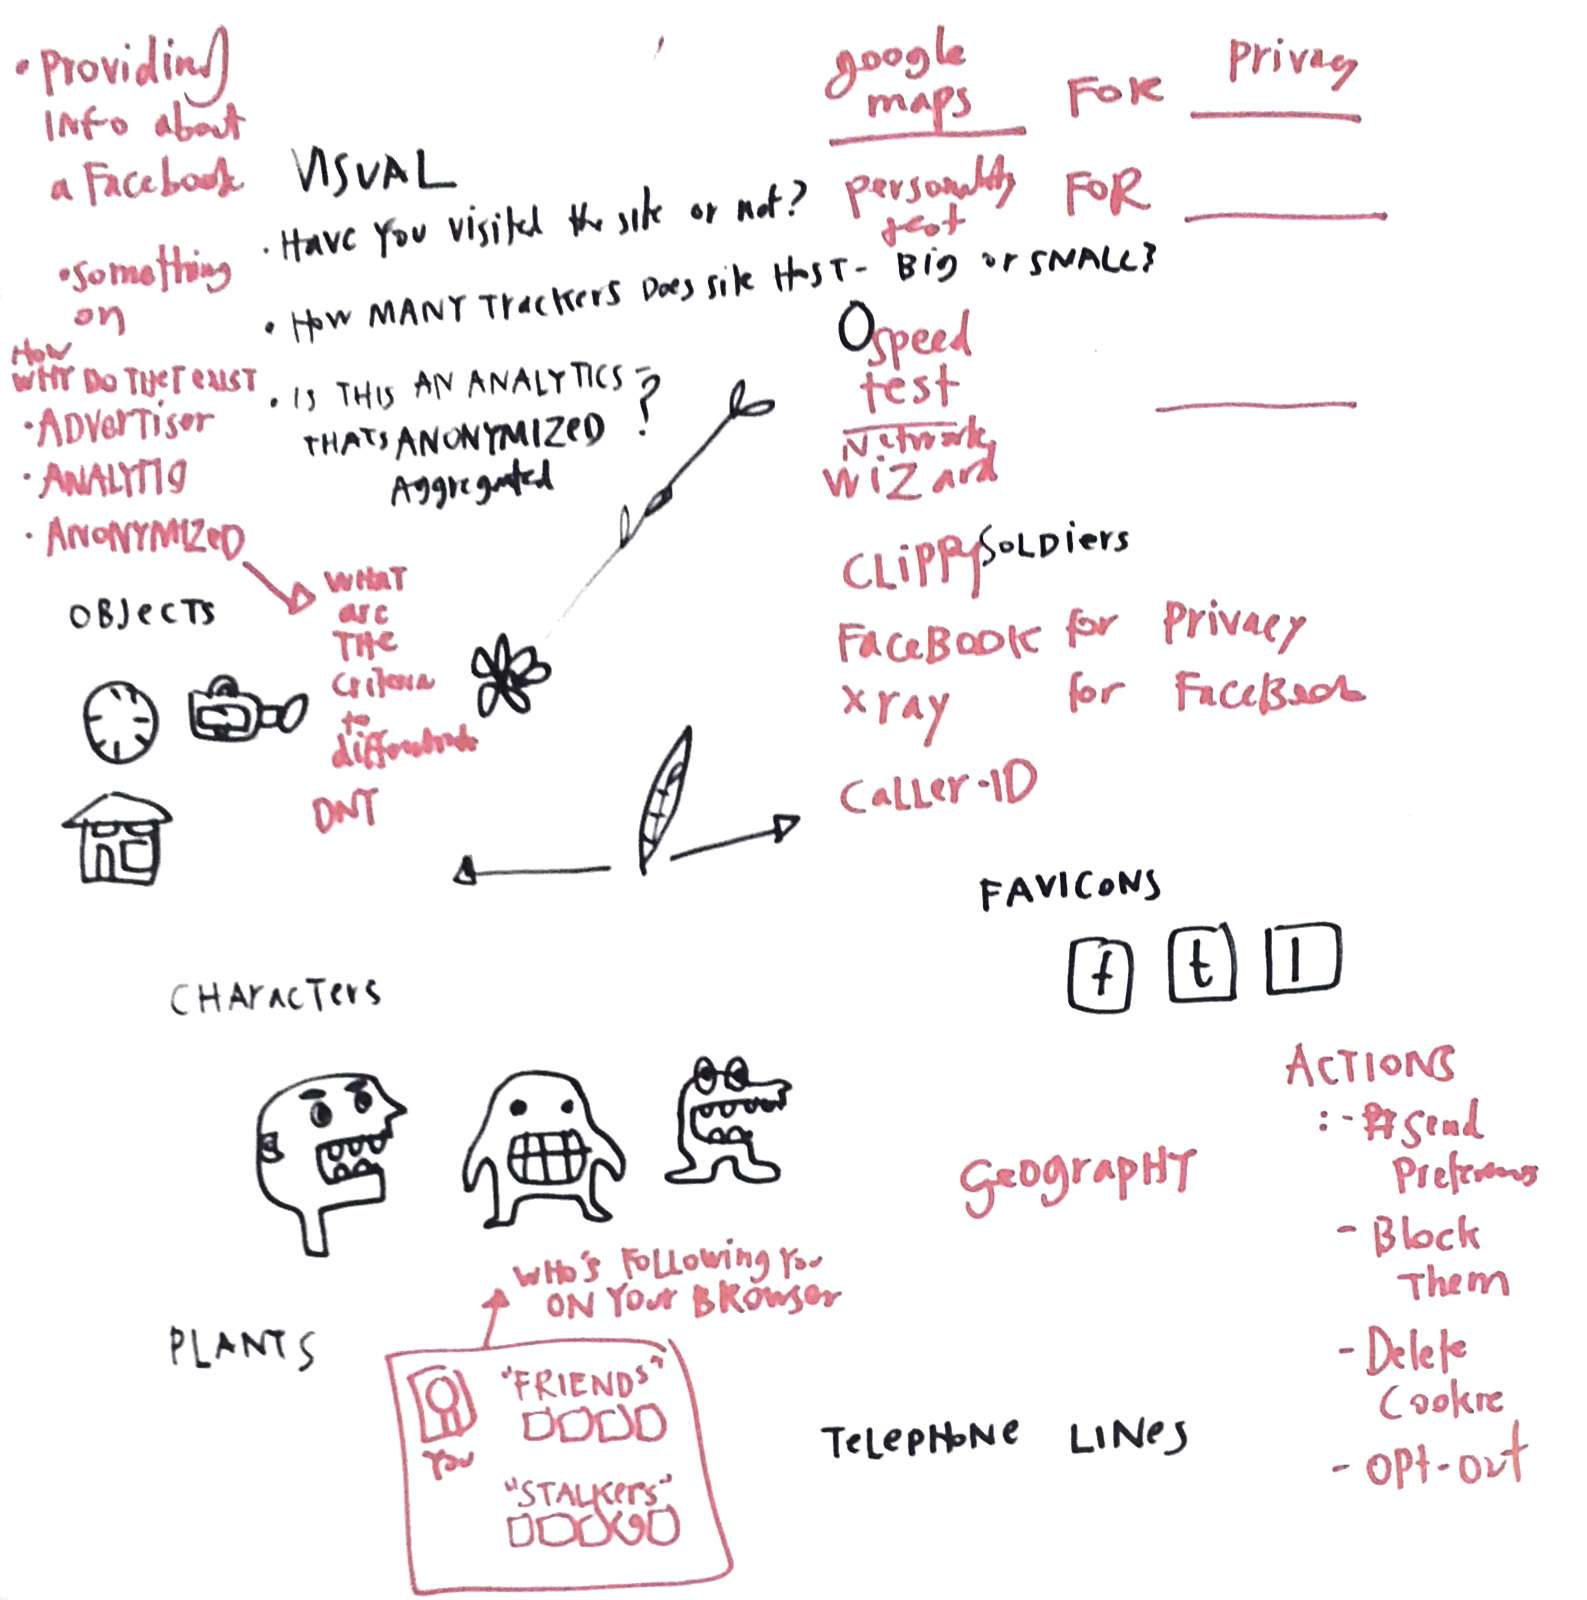 sketchnote on legal design and online privacy 4